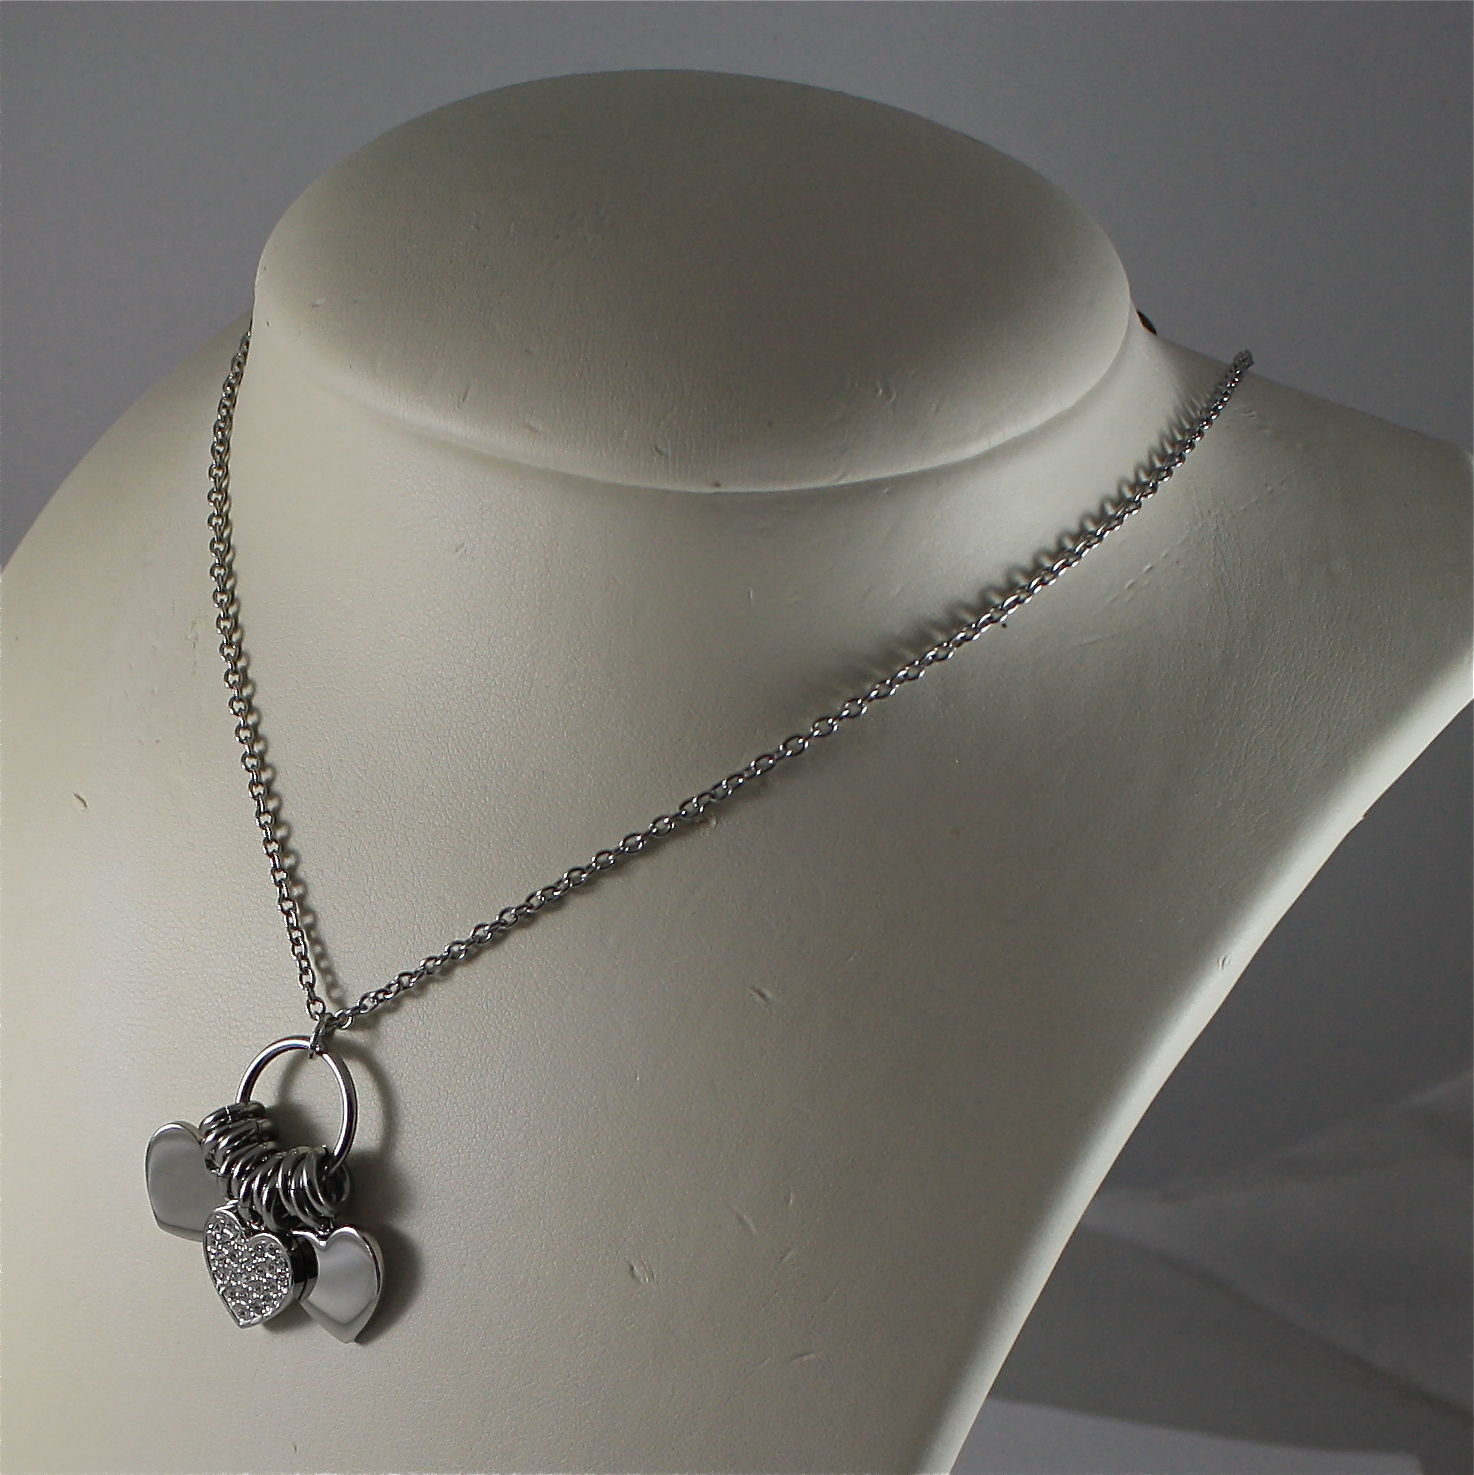 S'AGAPO' NECKLACE, 316L STEEL, TRIPLE HEART PENDANT, FACETED CRYSTAL.